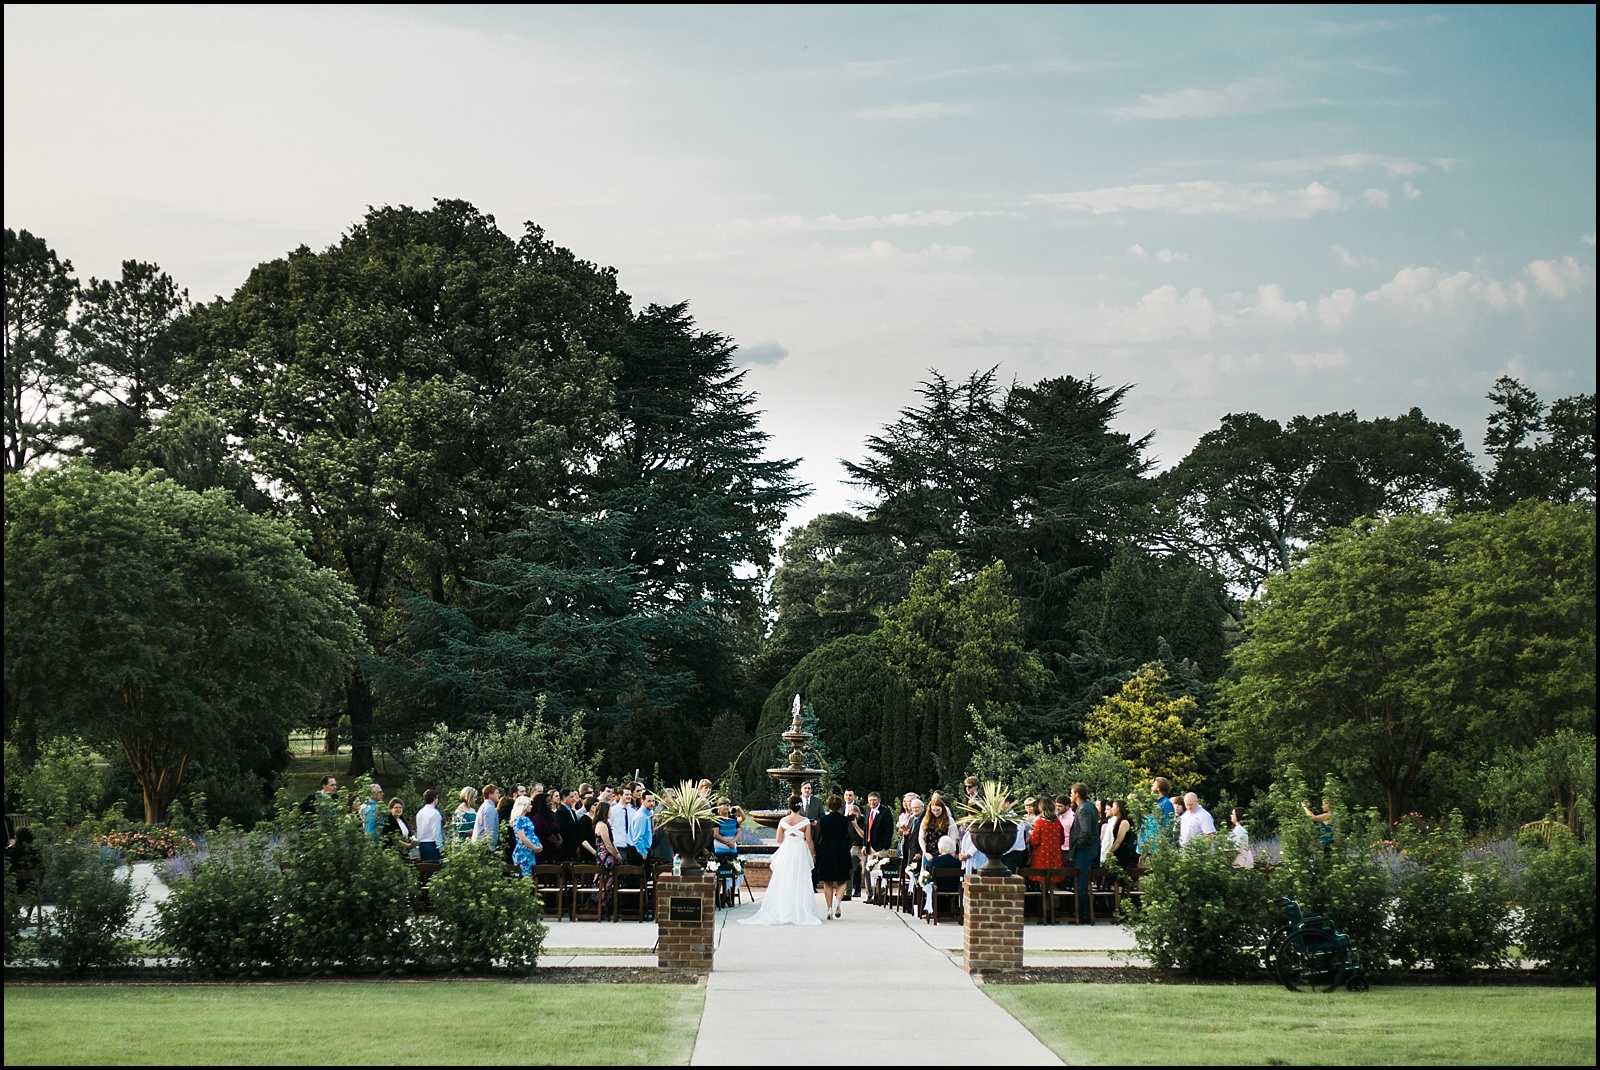 Memphis Botanic Garden outdoor wedding